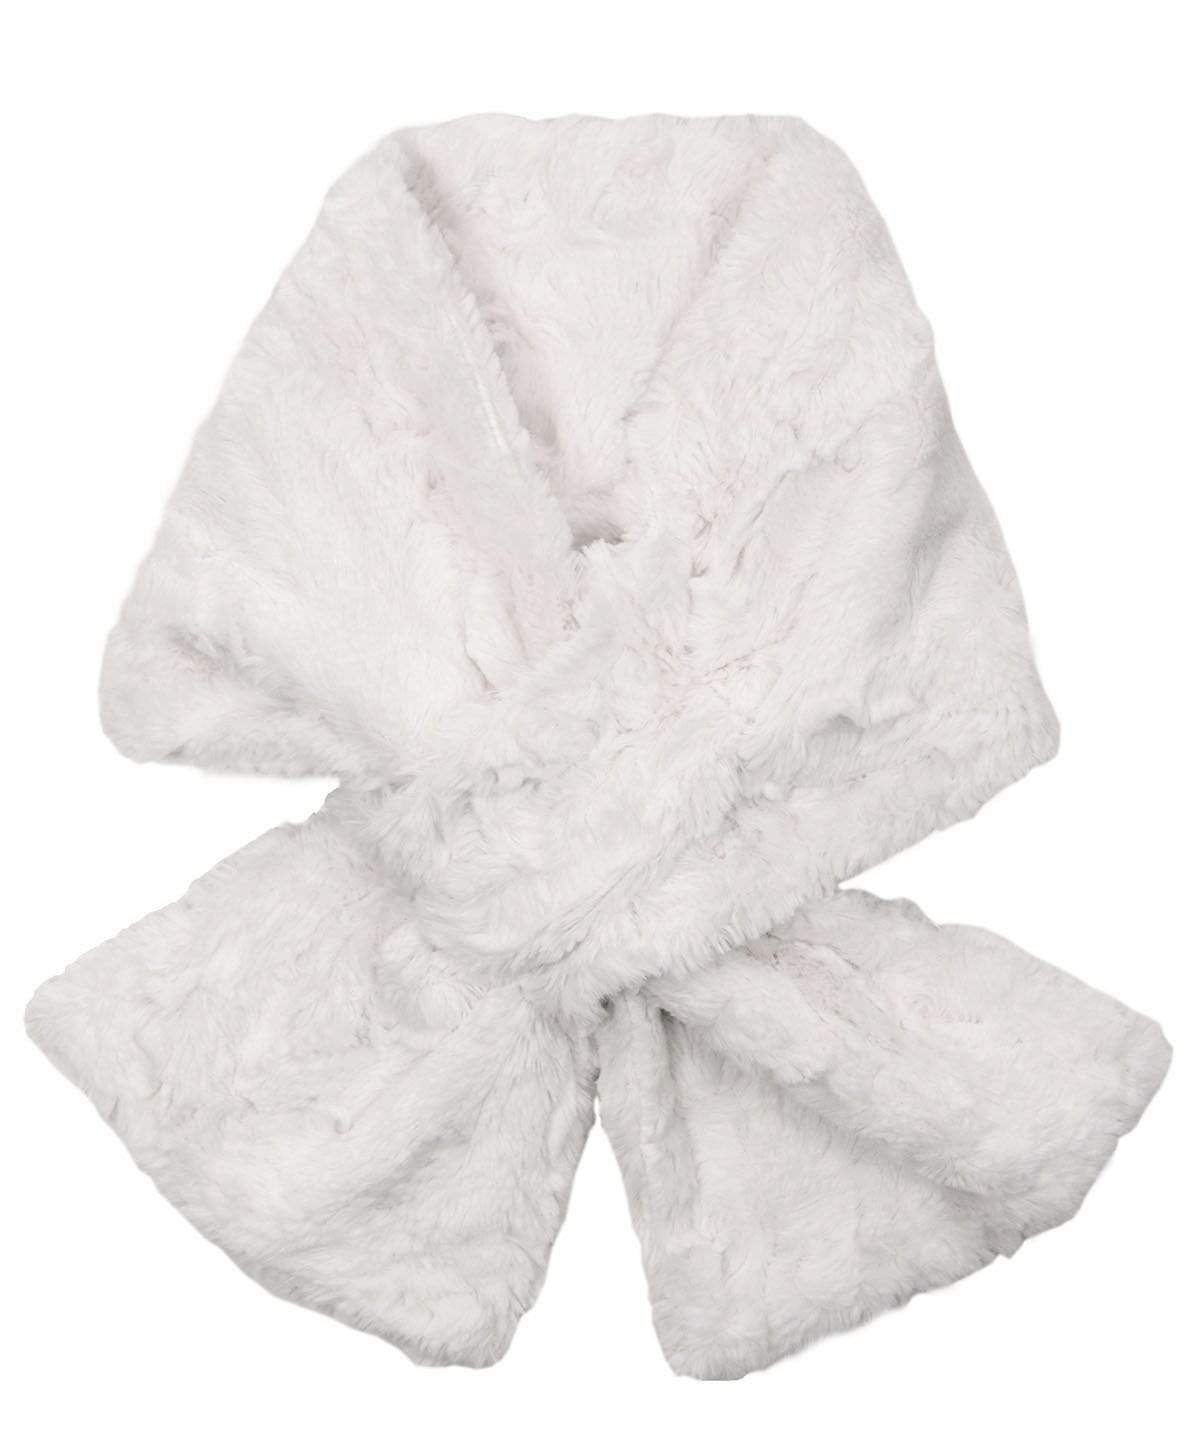 Pull-Thru Scarf - Cuddly Faux Fur in Ivory